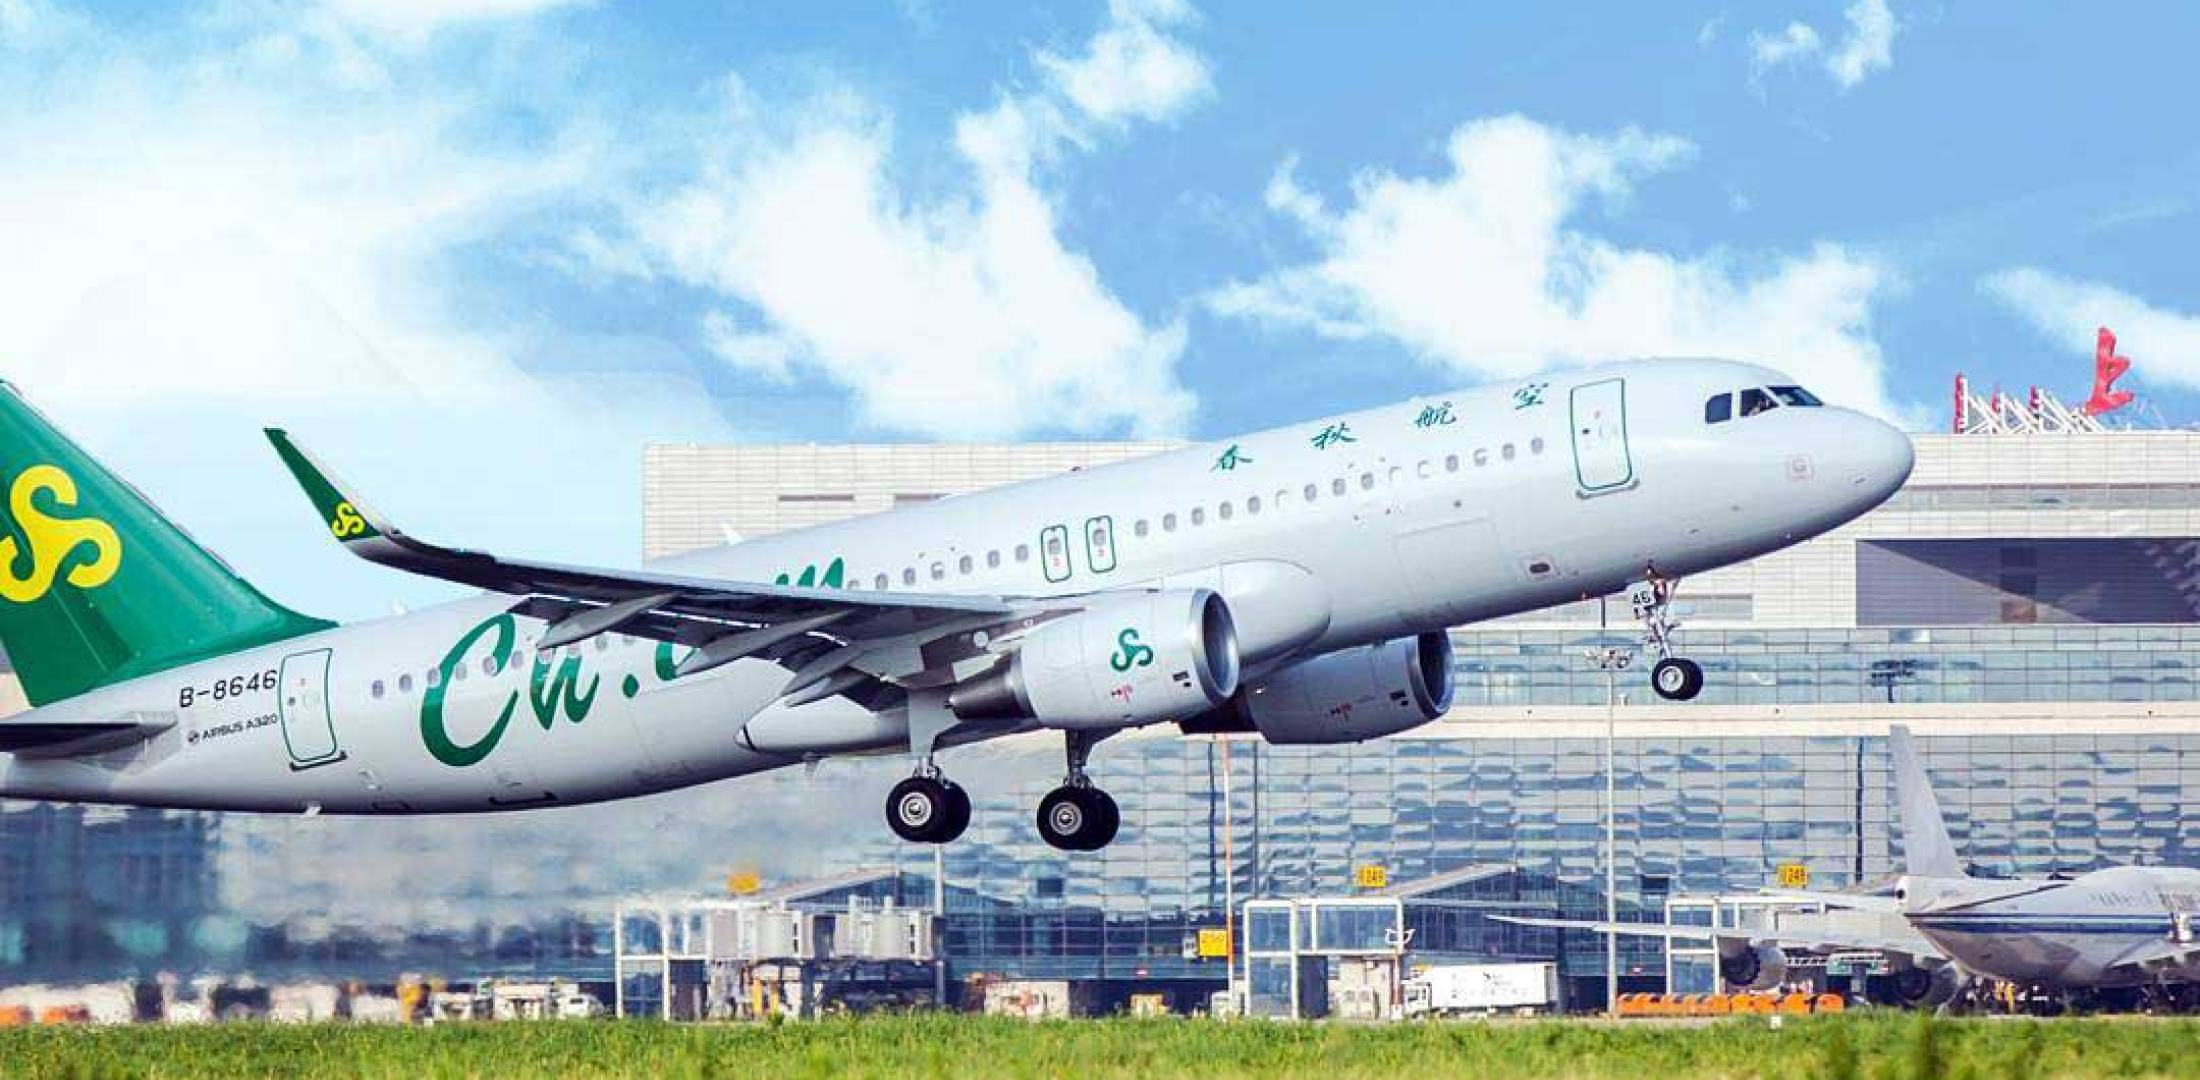 Chinese Low-cost Airlines Eye Growth Amid Stiff Competition | Aviation International News